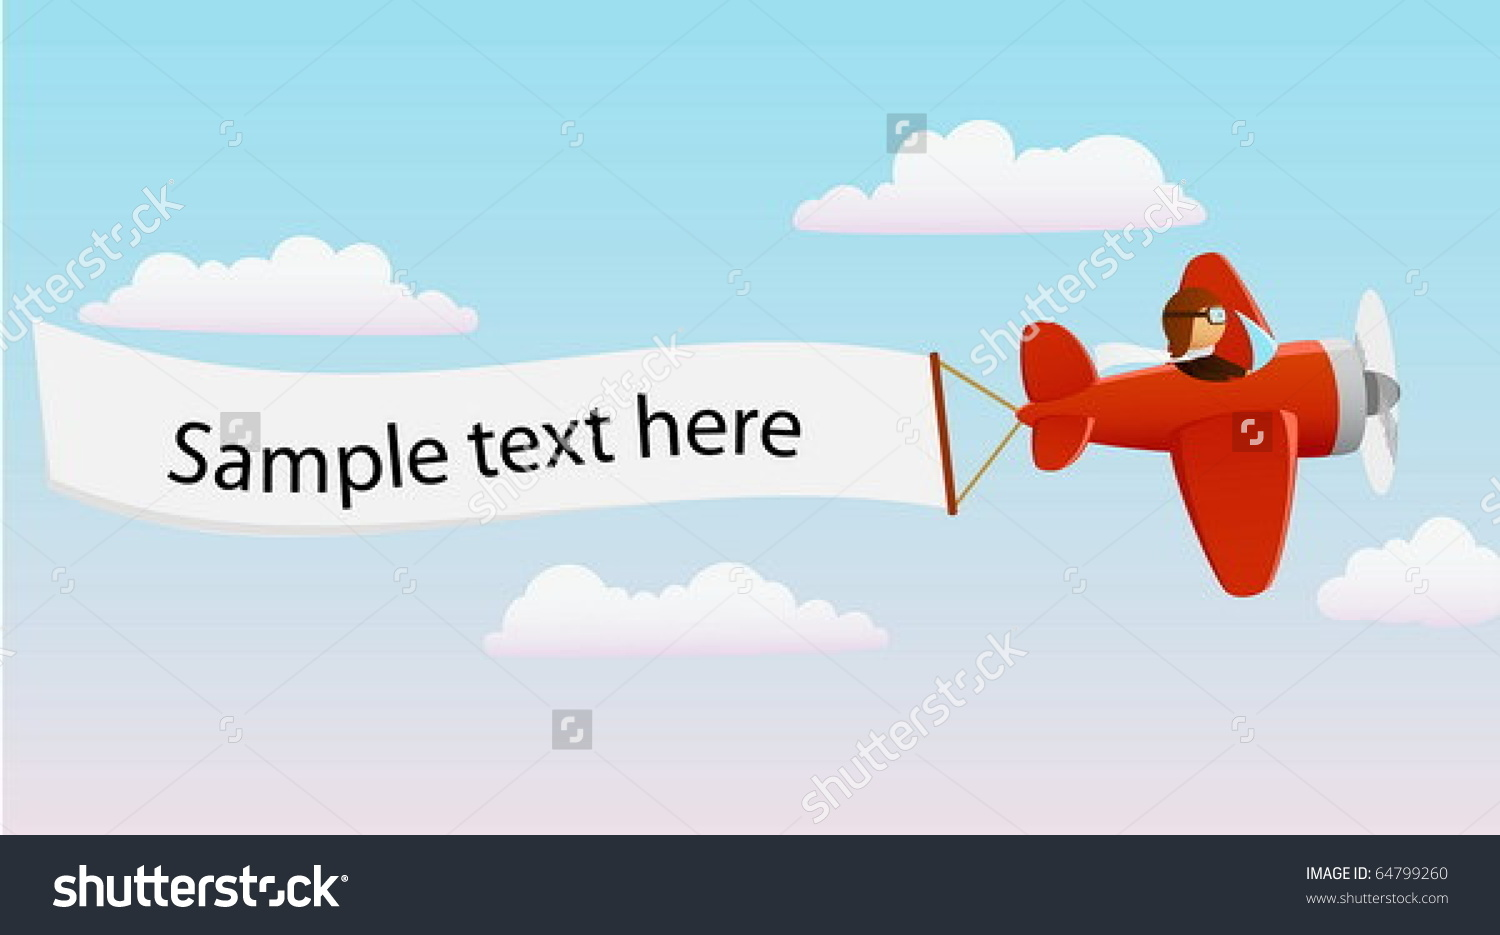 Red plane banner clipart banner transparent stock Red plane banner clipart - ClipartFox banner transparent stock